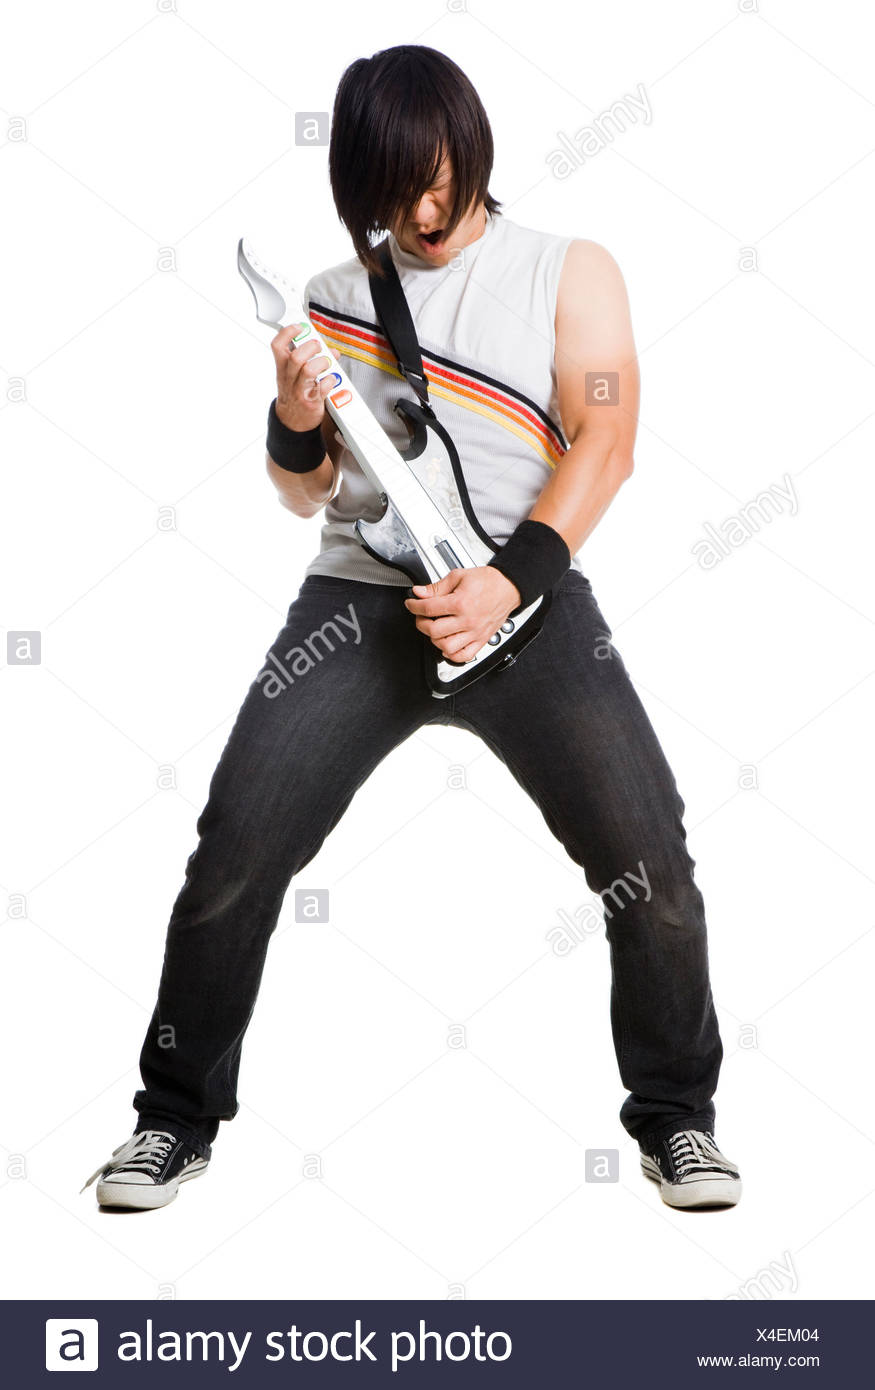 Young man playing guitar video game and screaming, studio shot - Stock Image